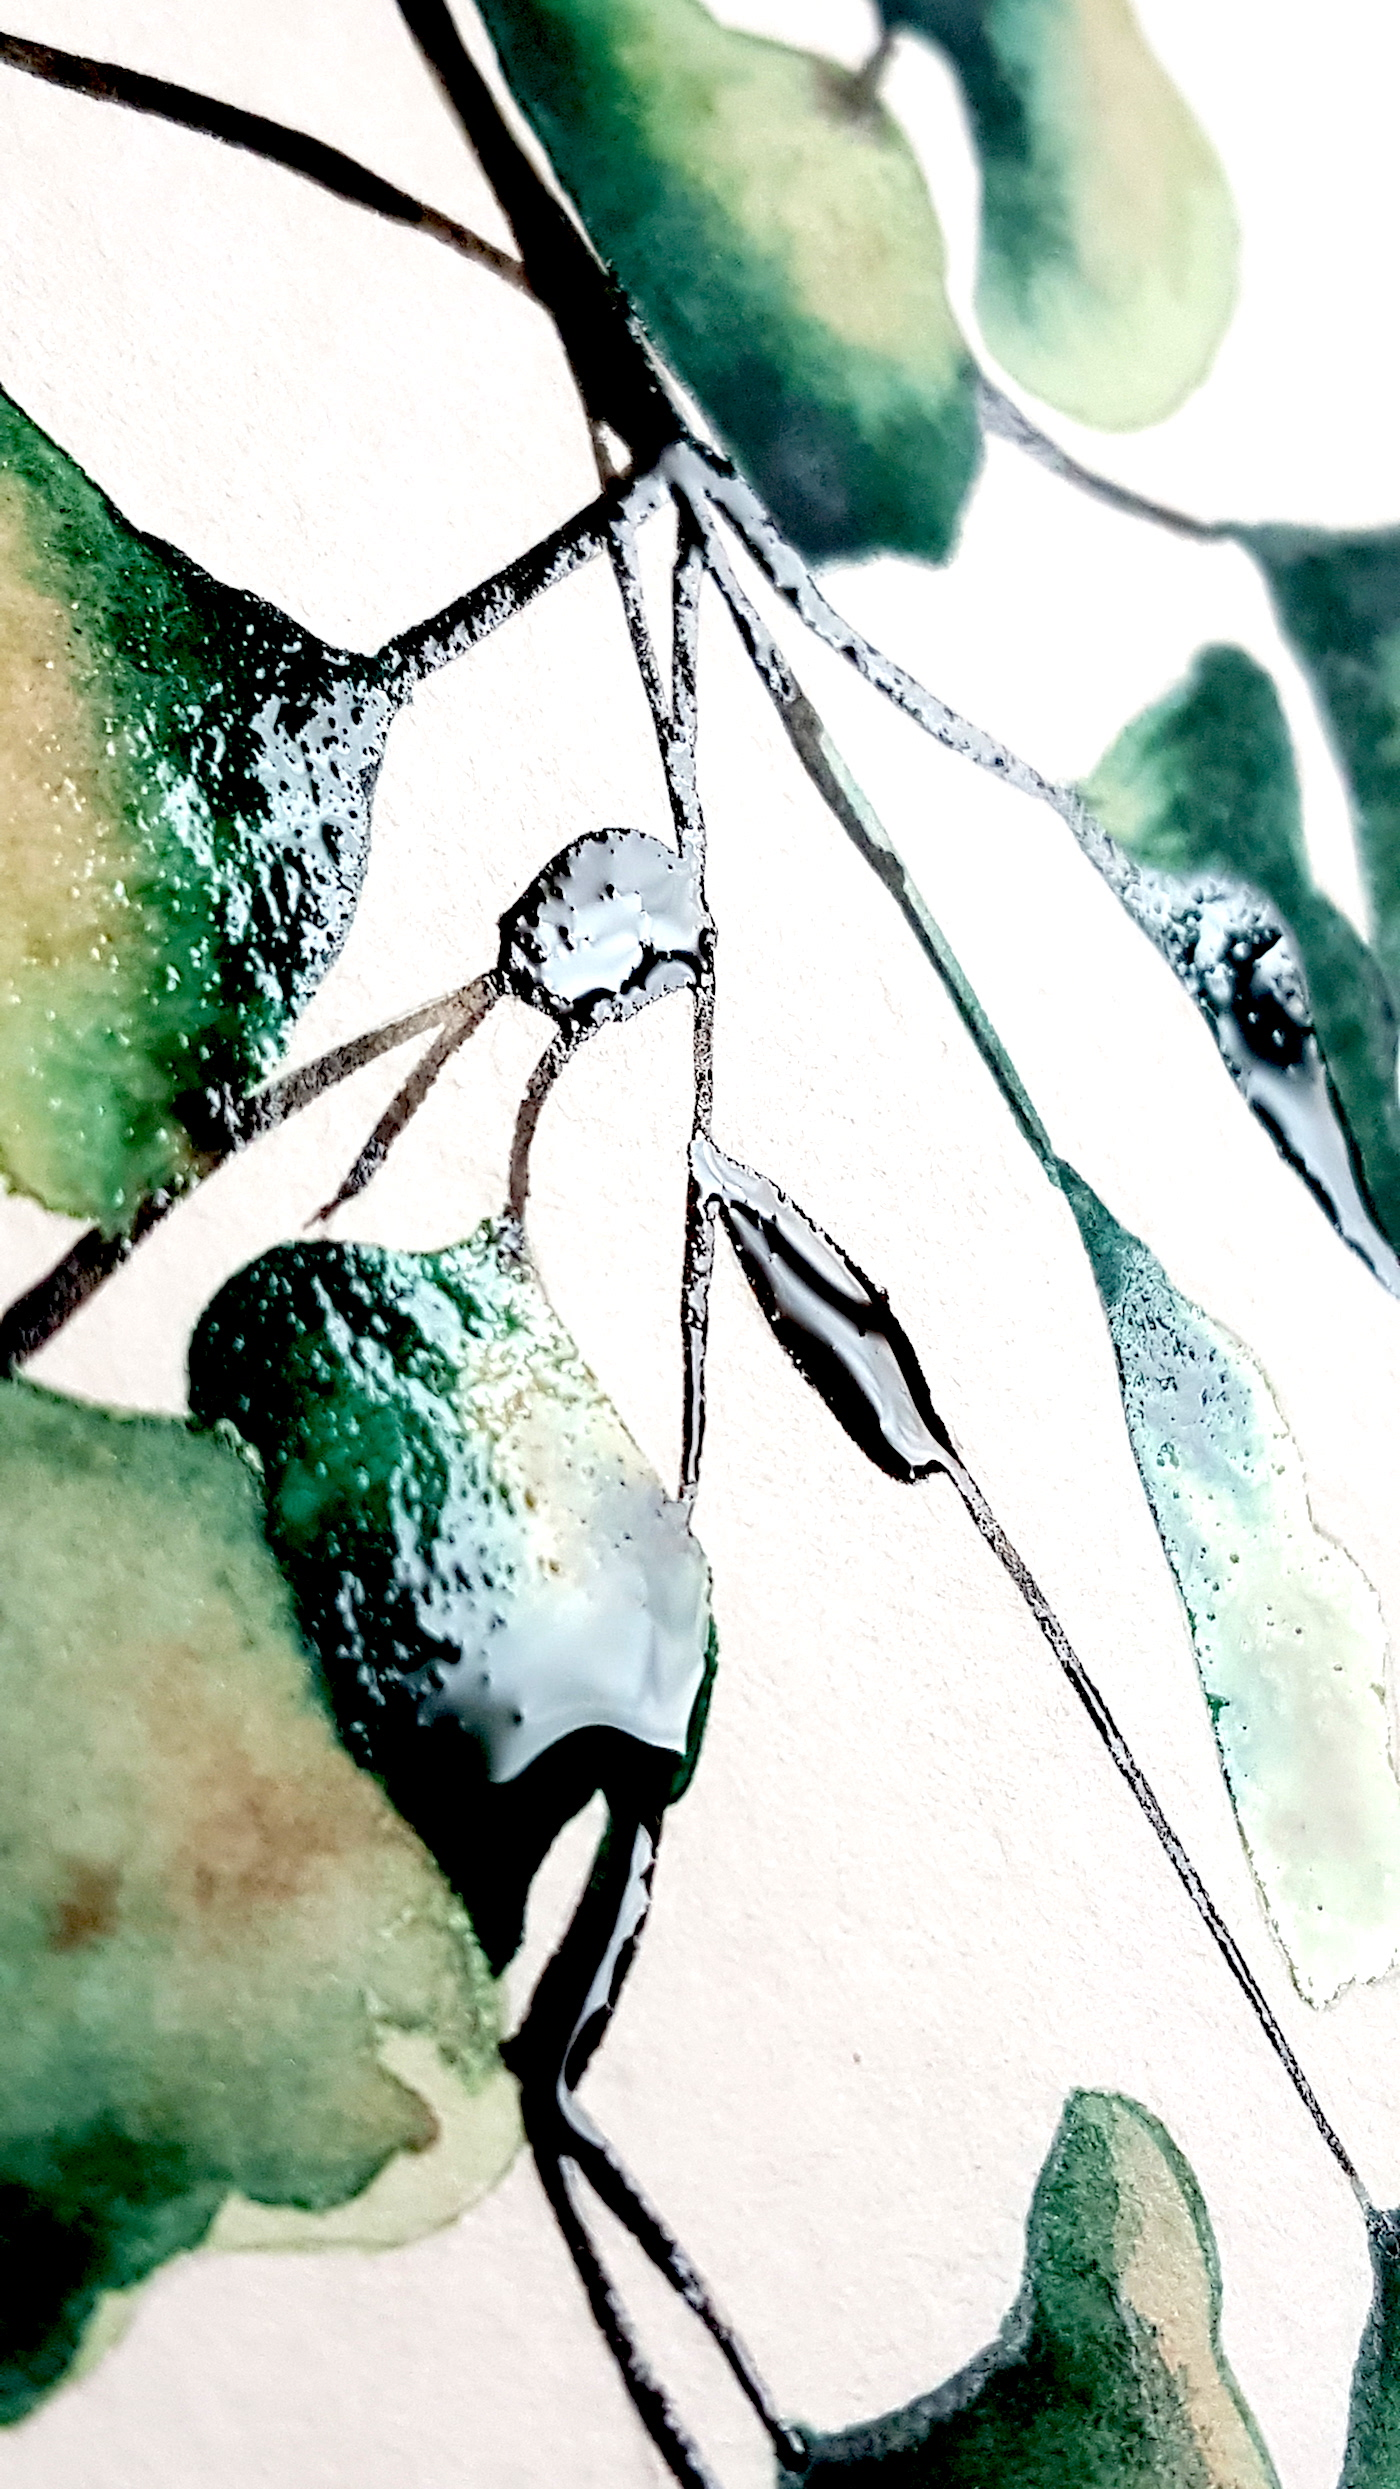 Green leaves showing wet watercolour paint